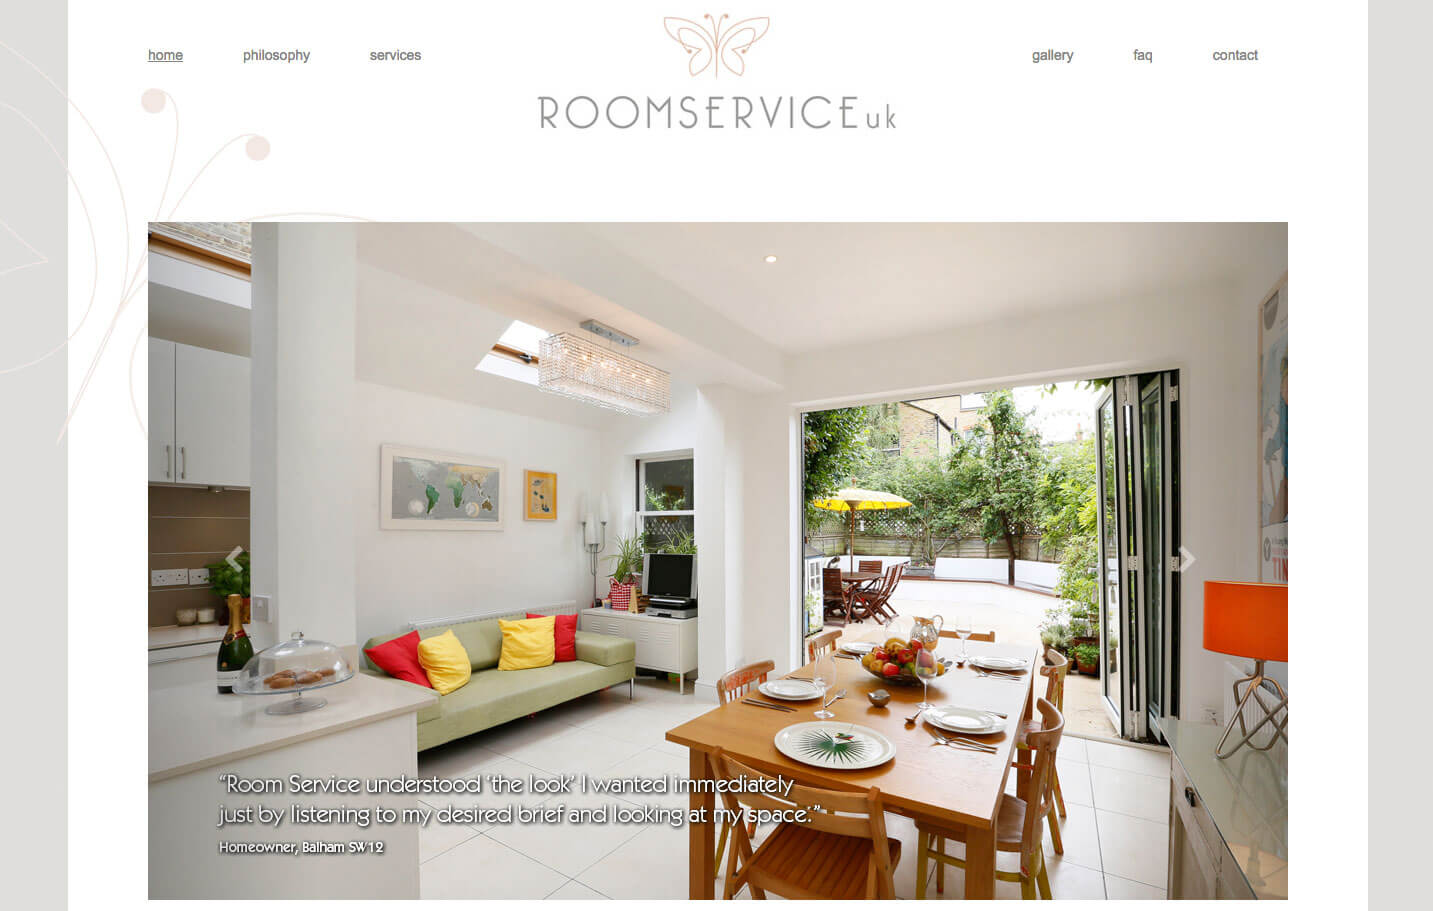 Room Service - Home page